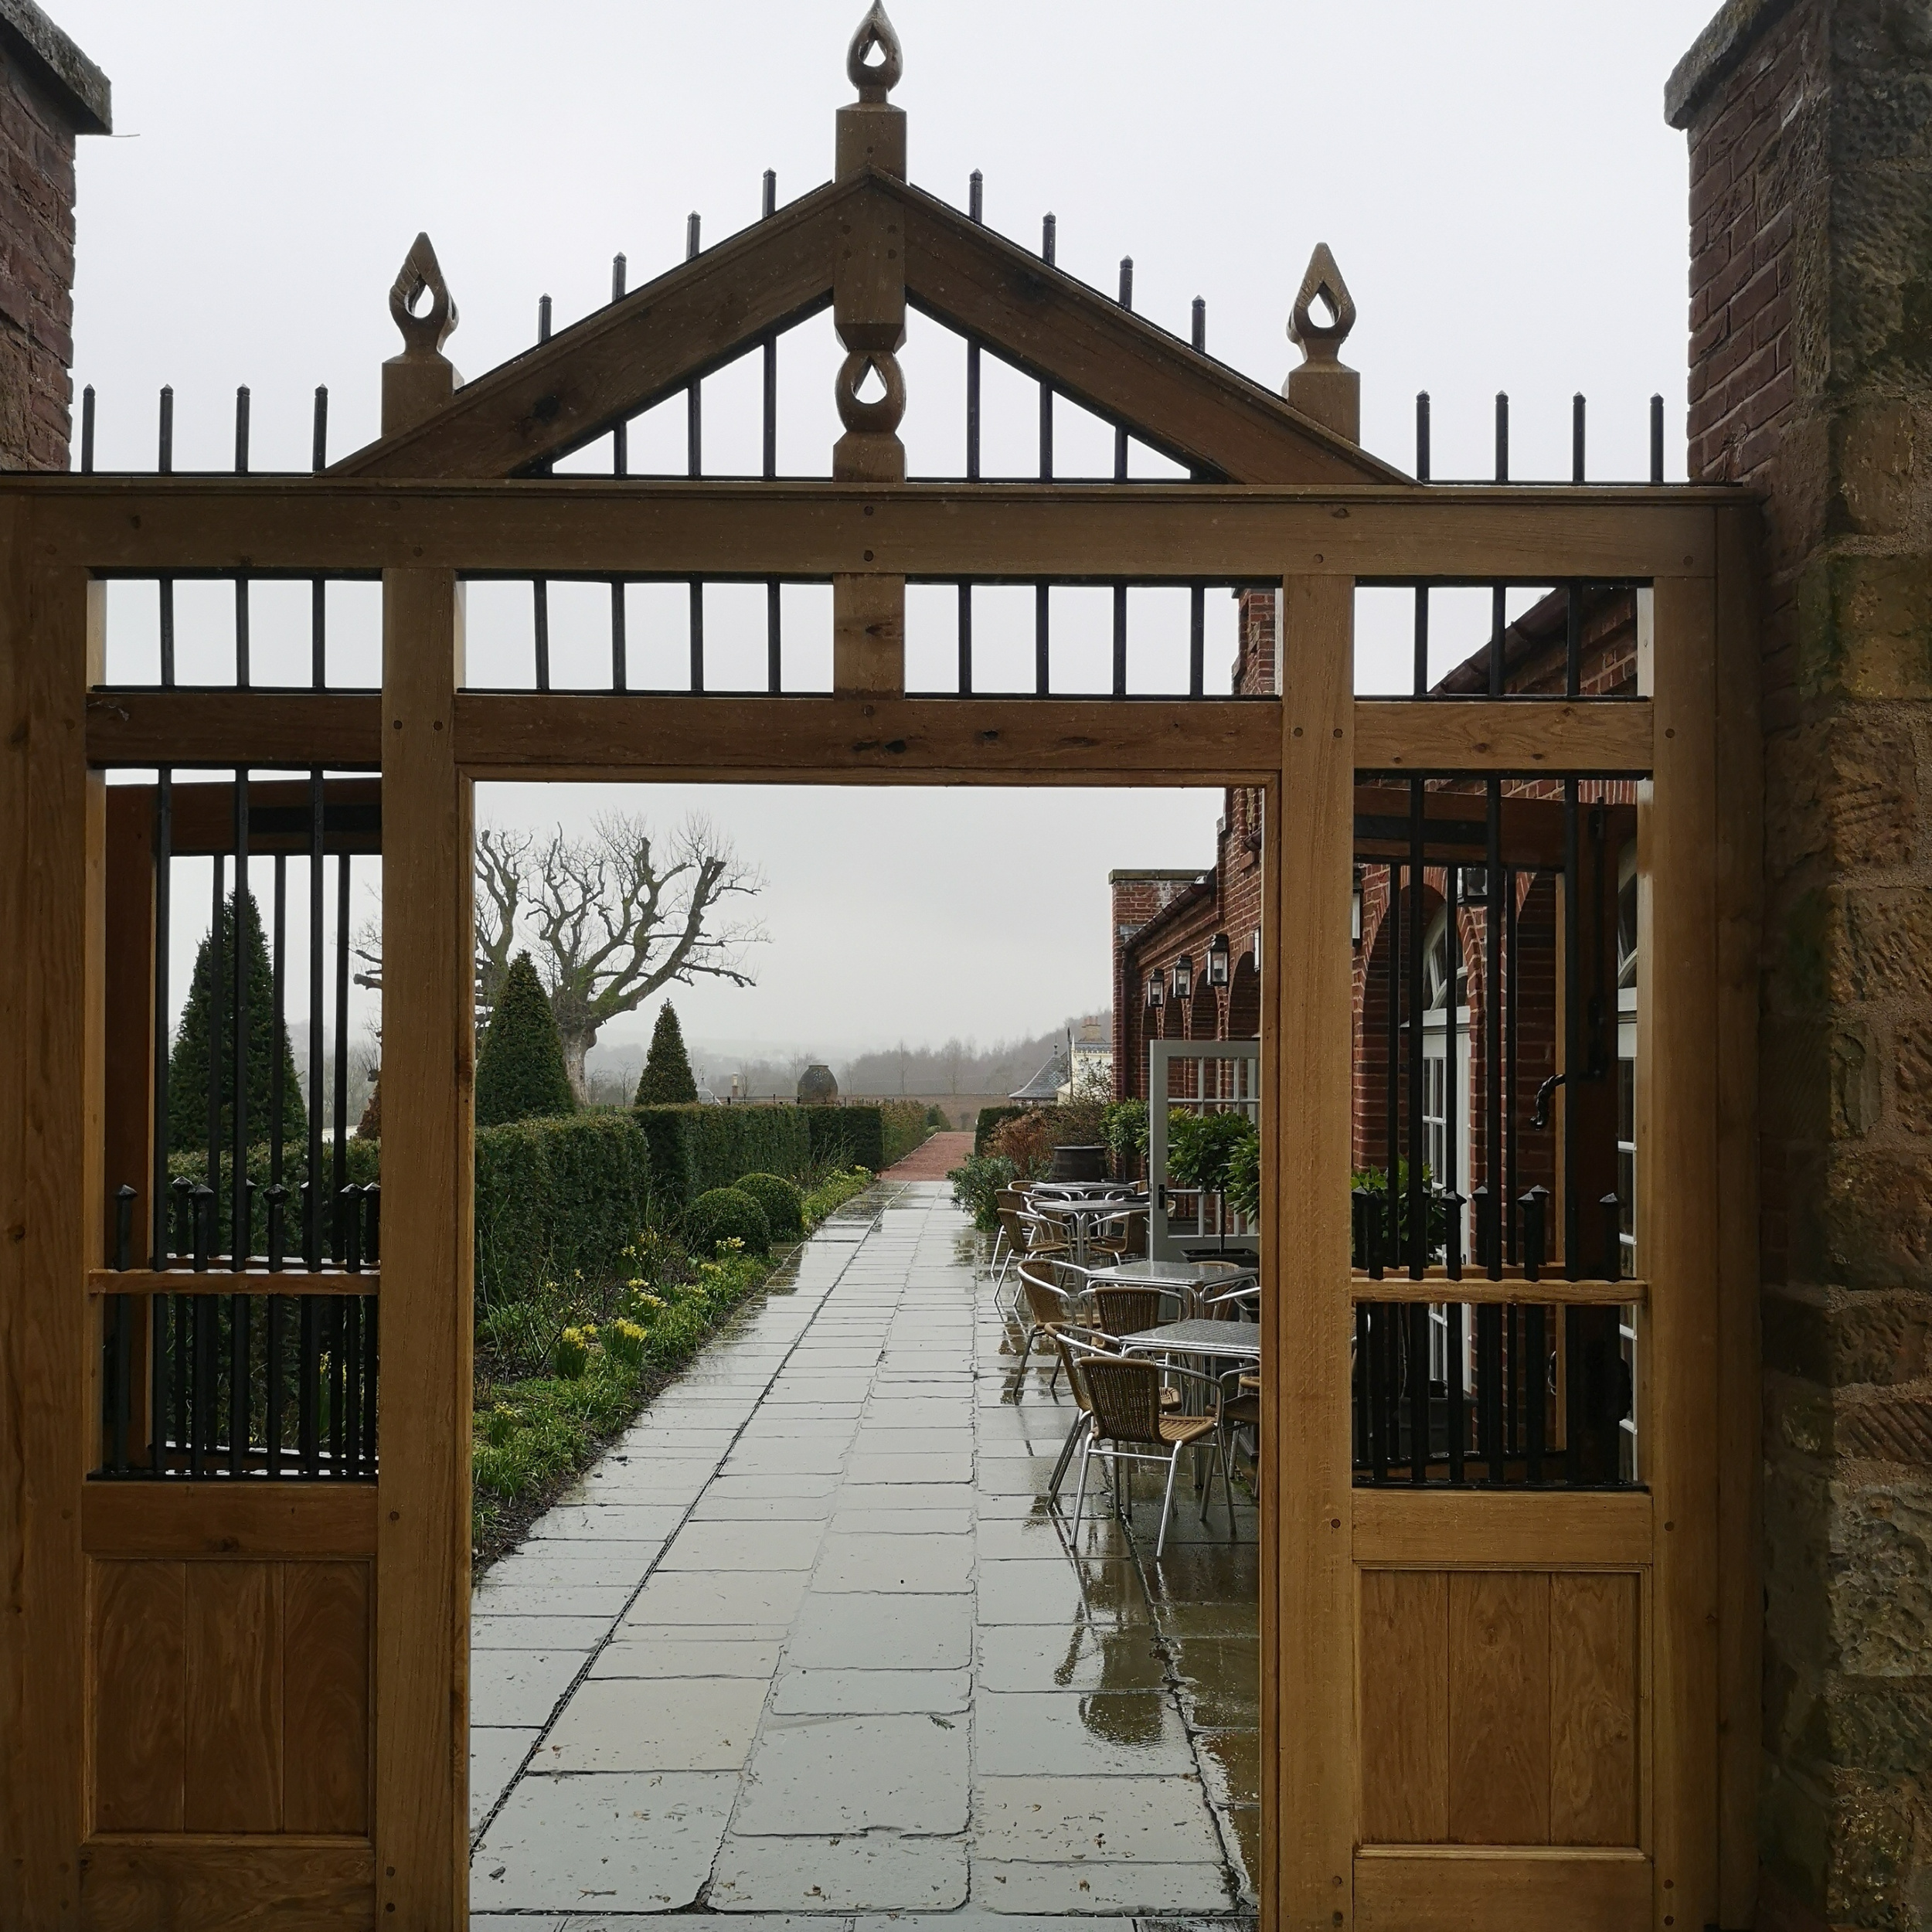 Full view of Dumfries House walled garden gate